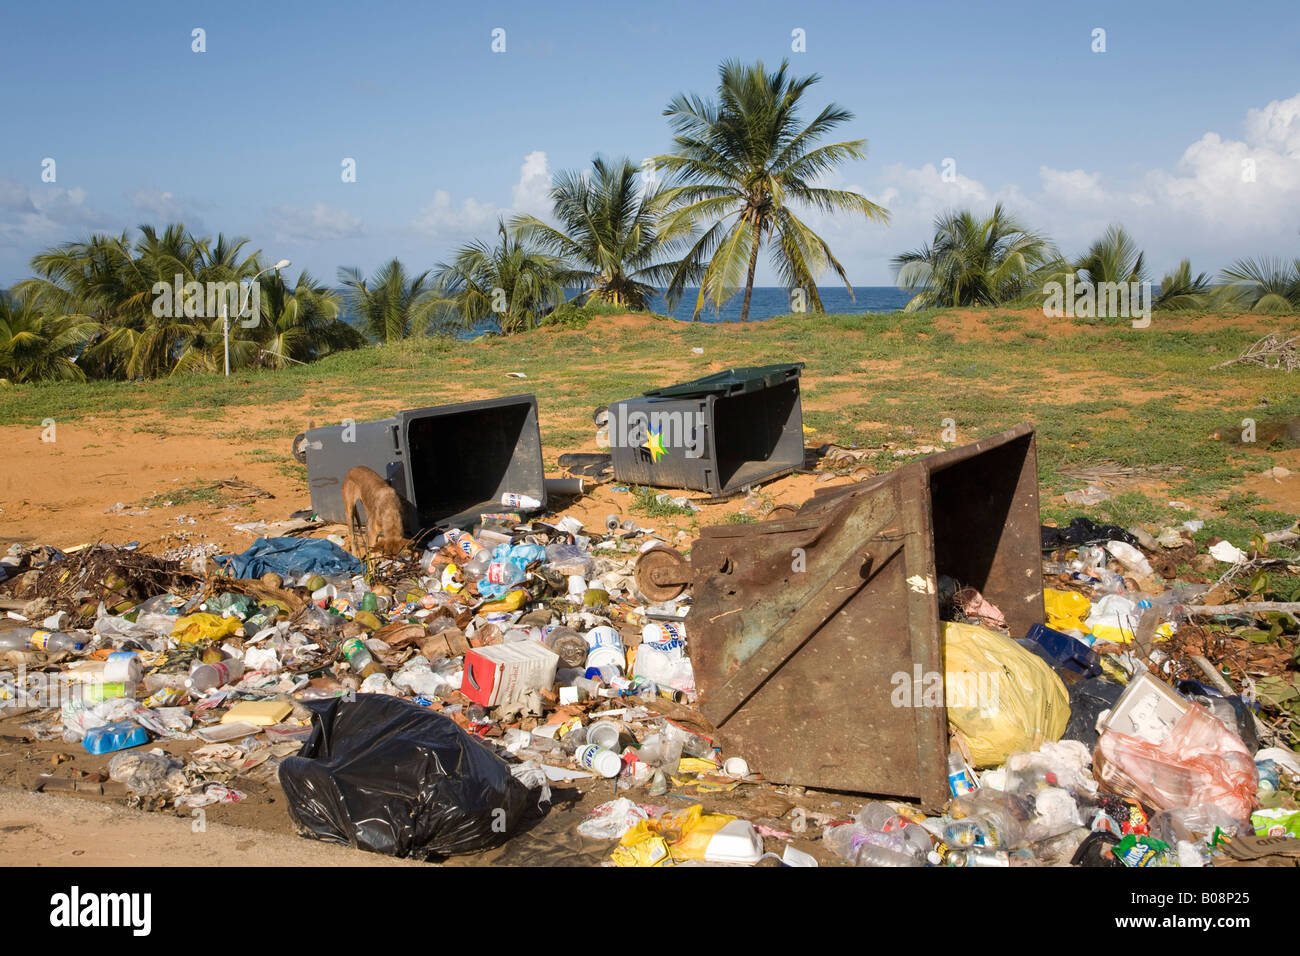 Pollution, litter, illegal garbage dumping, Isla Margarita, Margarita Island, Caribbean, Venezuela, South America - Stock Image